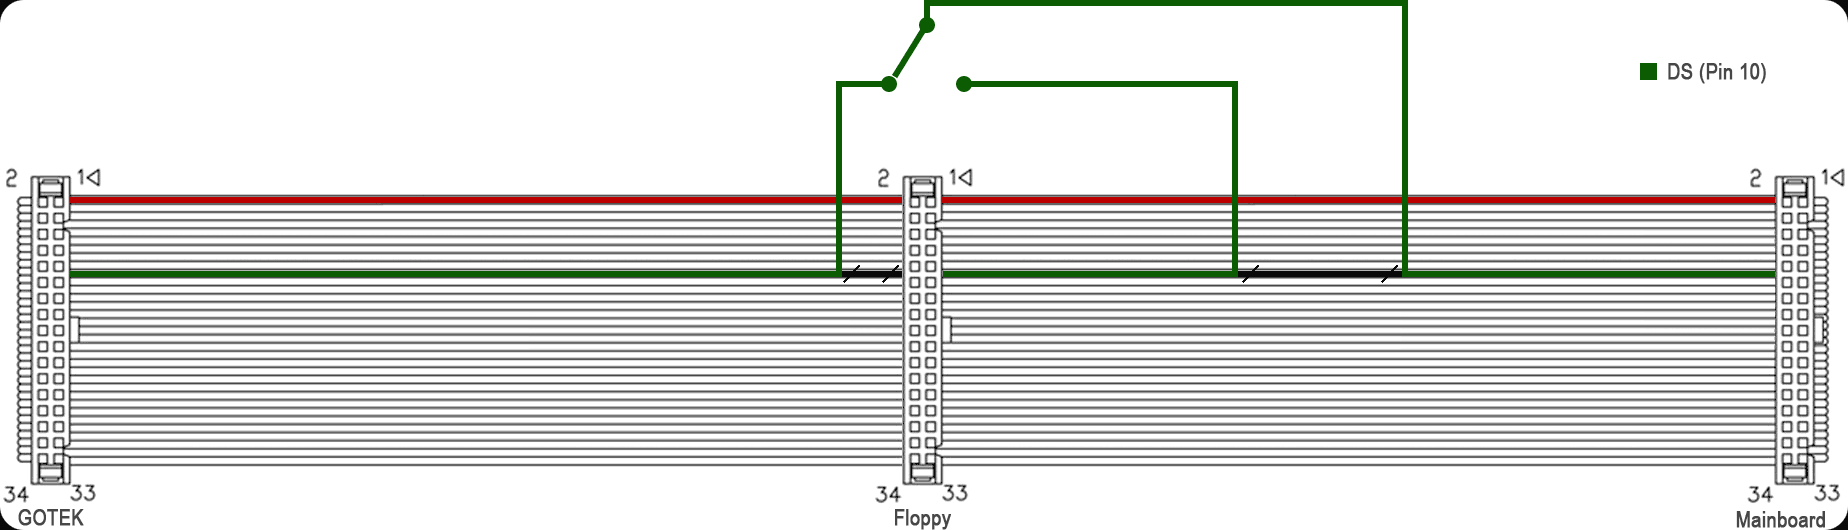 A1200 Gotek Pinout Also Vga Cable Diagram Besides Keyboard Connector It Does Not Matter On What Side You Set The 34 Pin Floppy As Long 1 Is